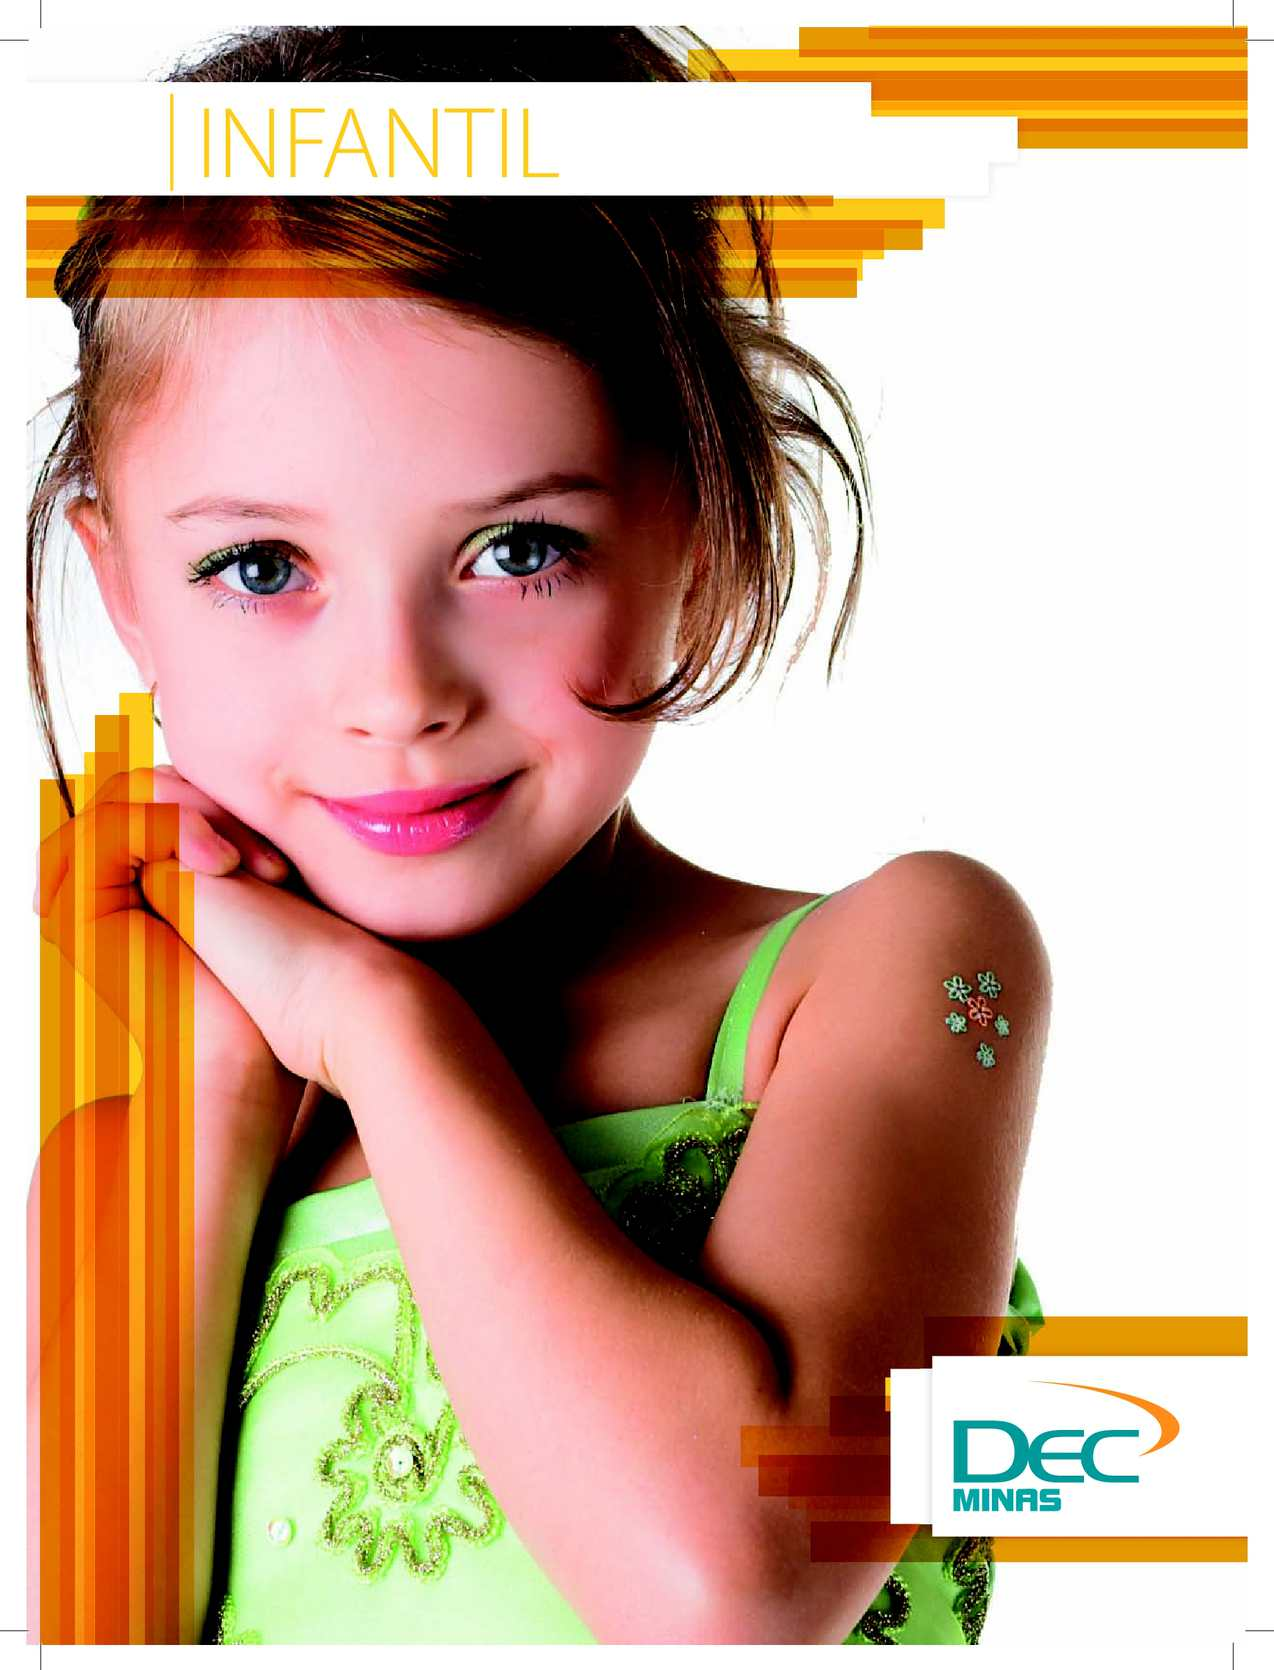 CATALOGO DEC MINAS - Infantil